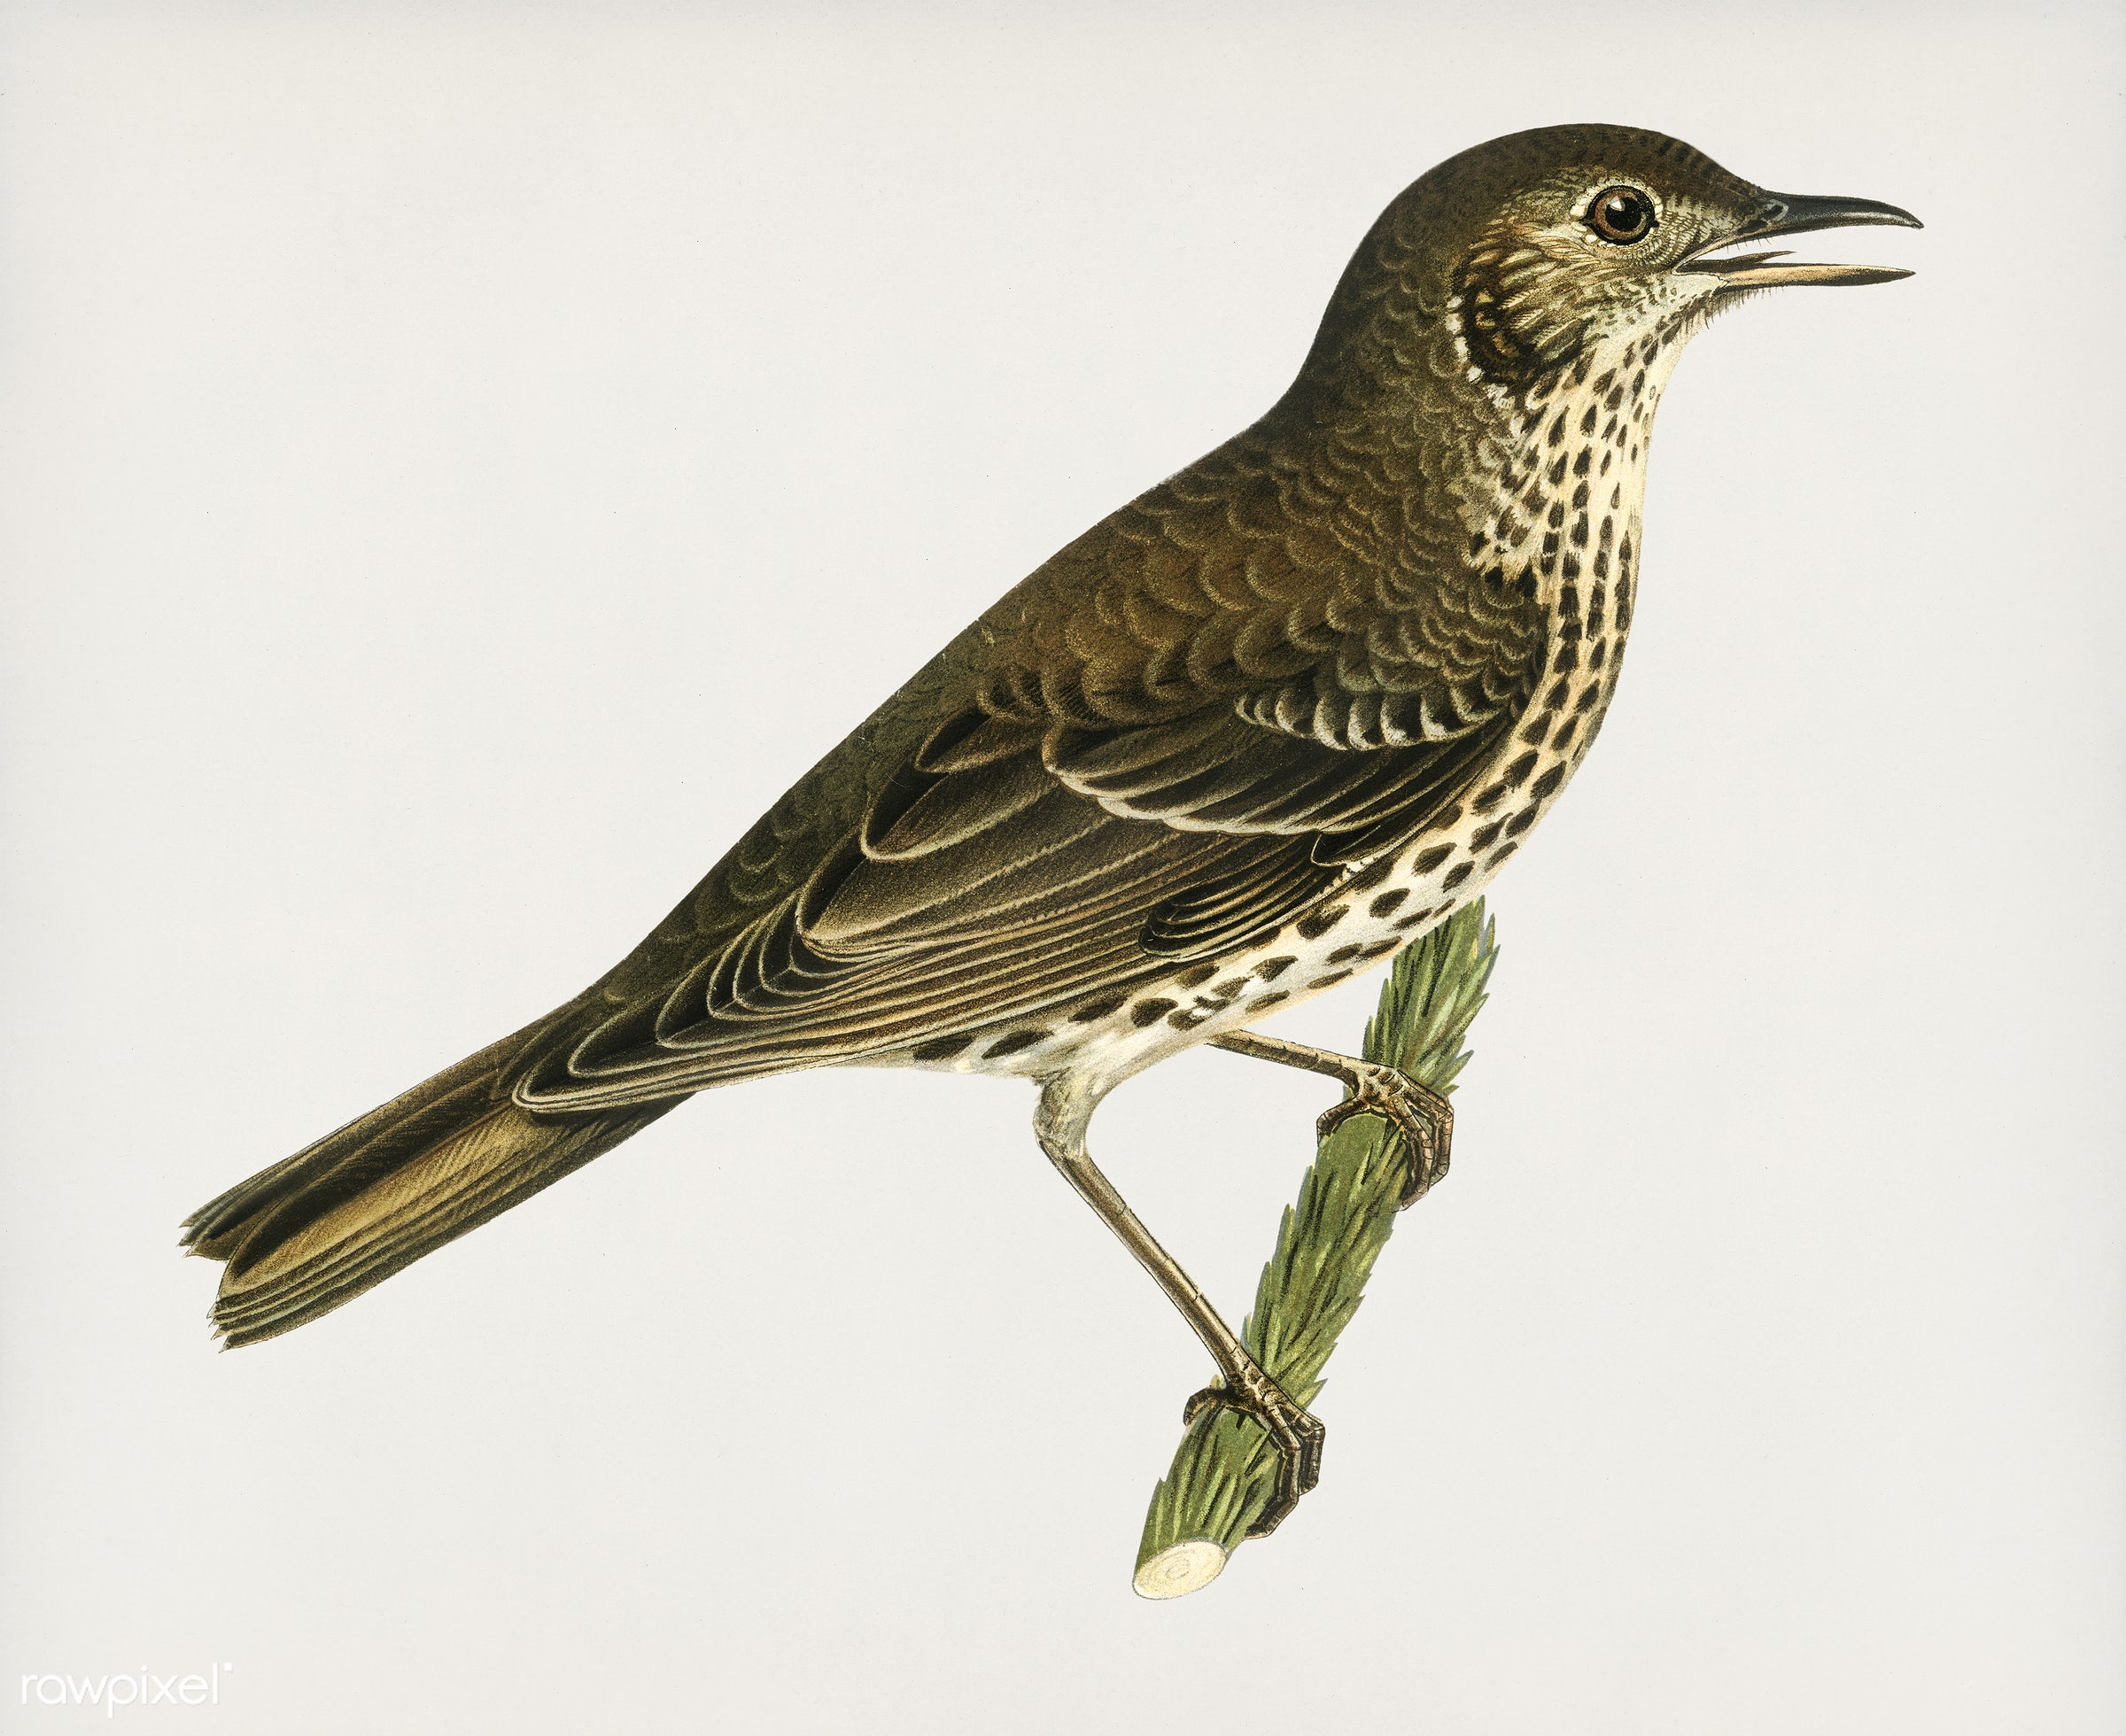 Redwing-Song thrush (Turdus usicus) illustrated by the von Wright brothers. Digitally enhanced from our own 1929 folio...